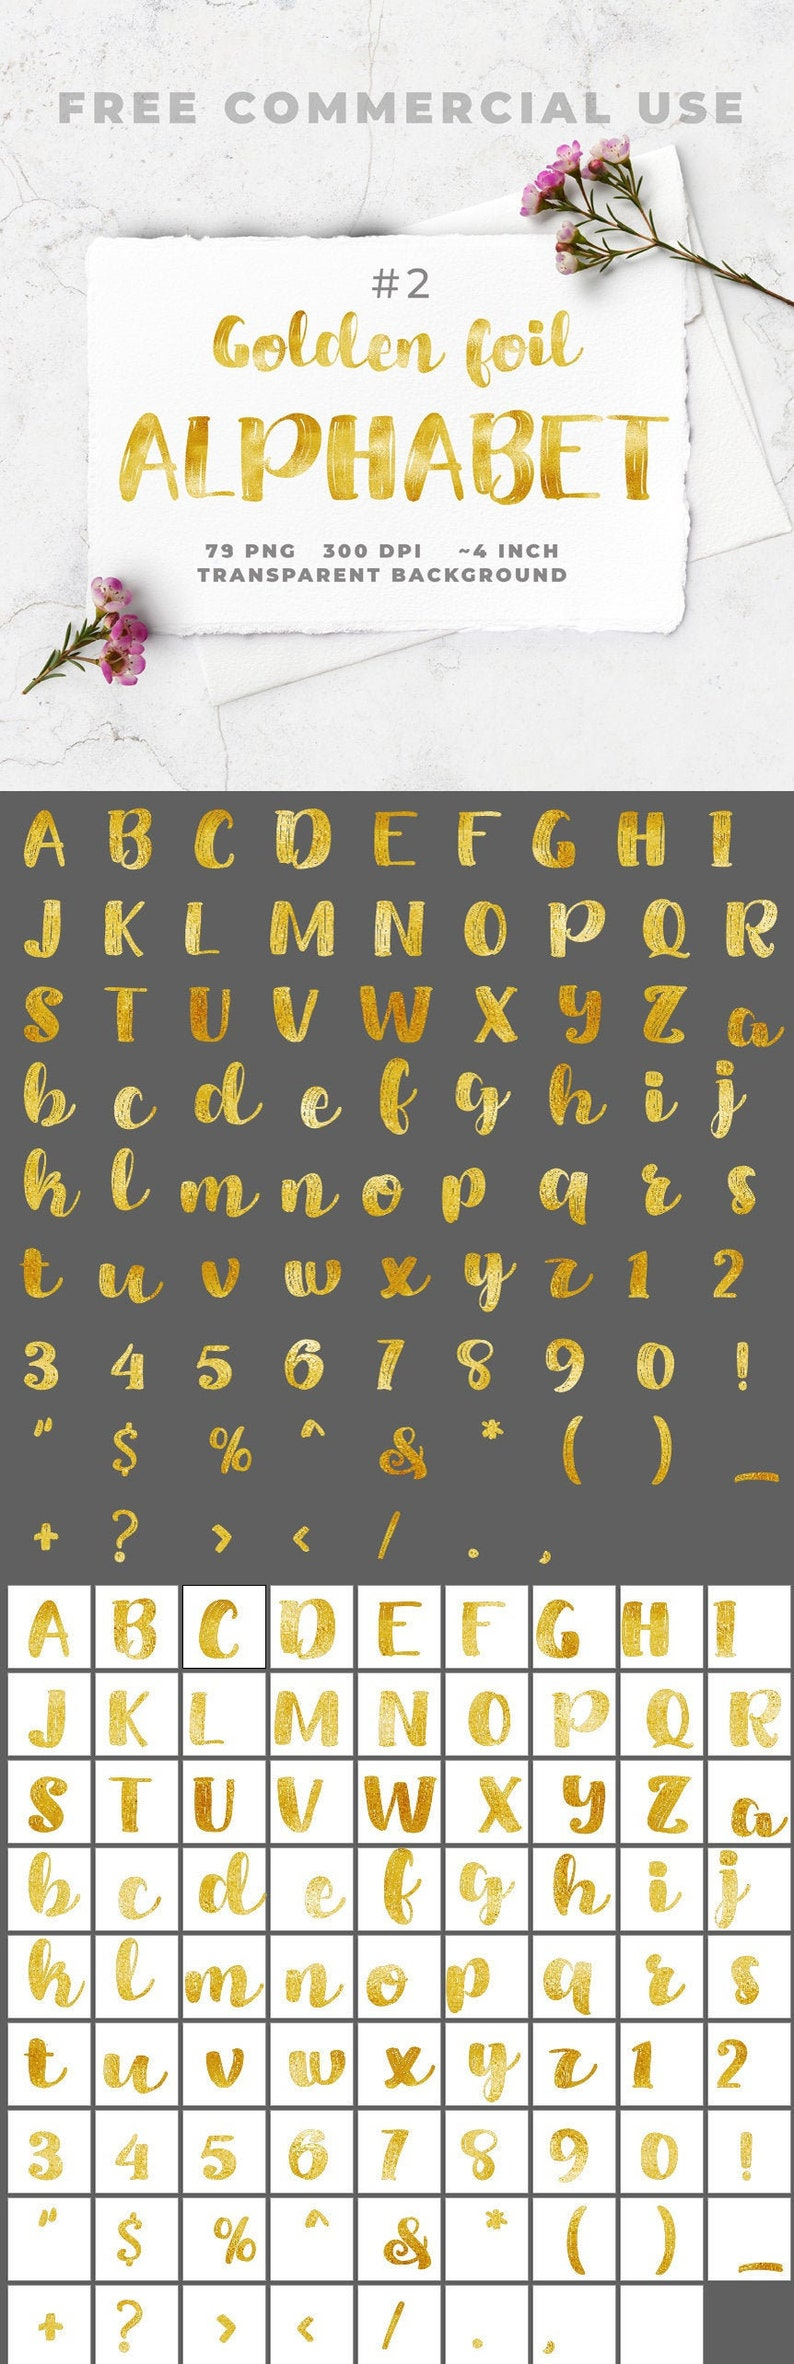 Commercial use bold brush style golden font alphabet clipart image 0